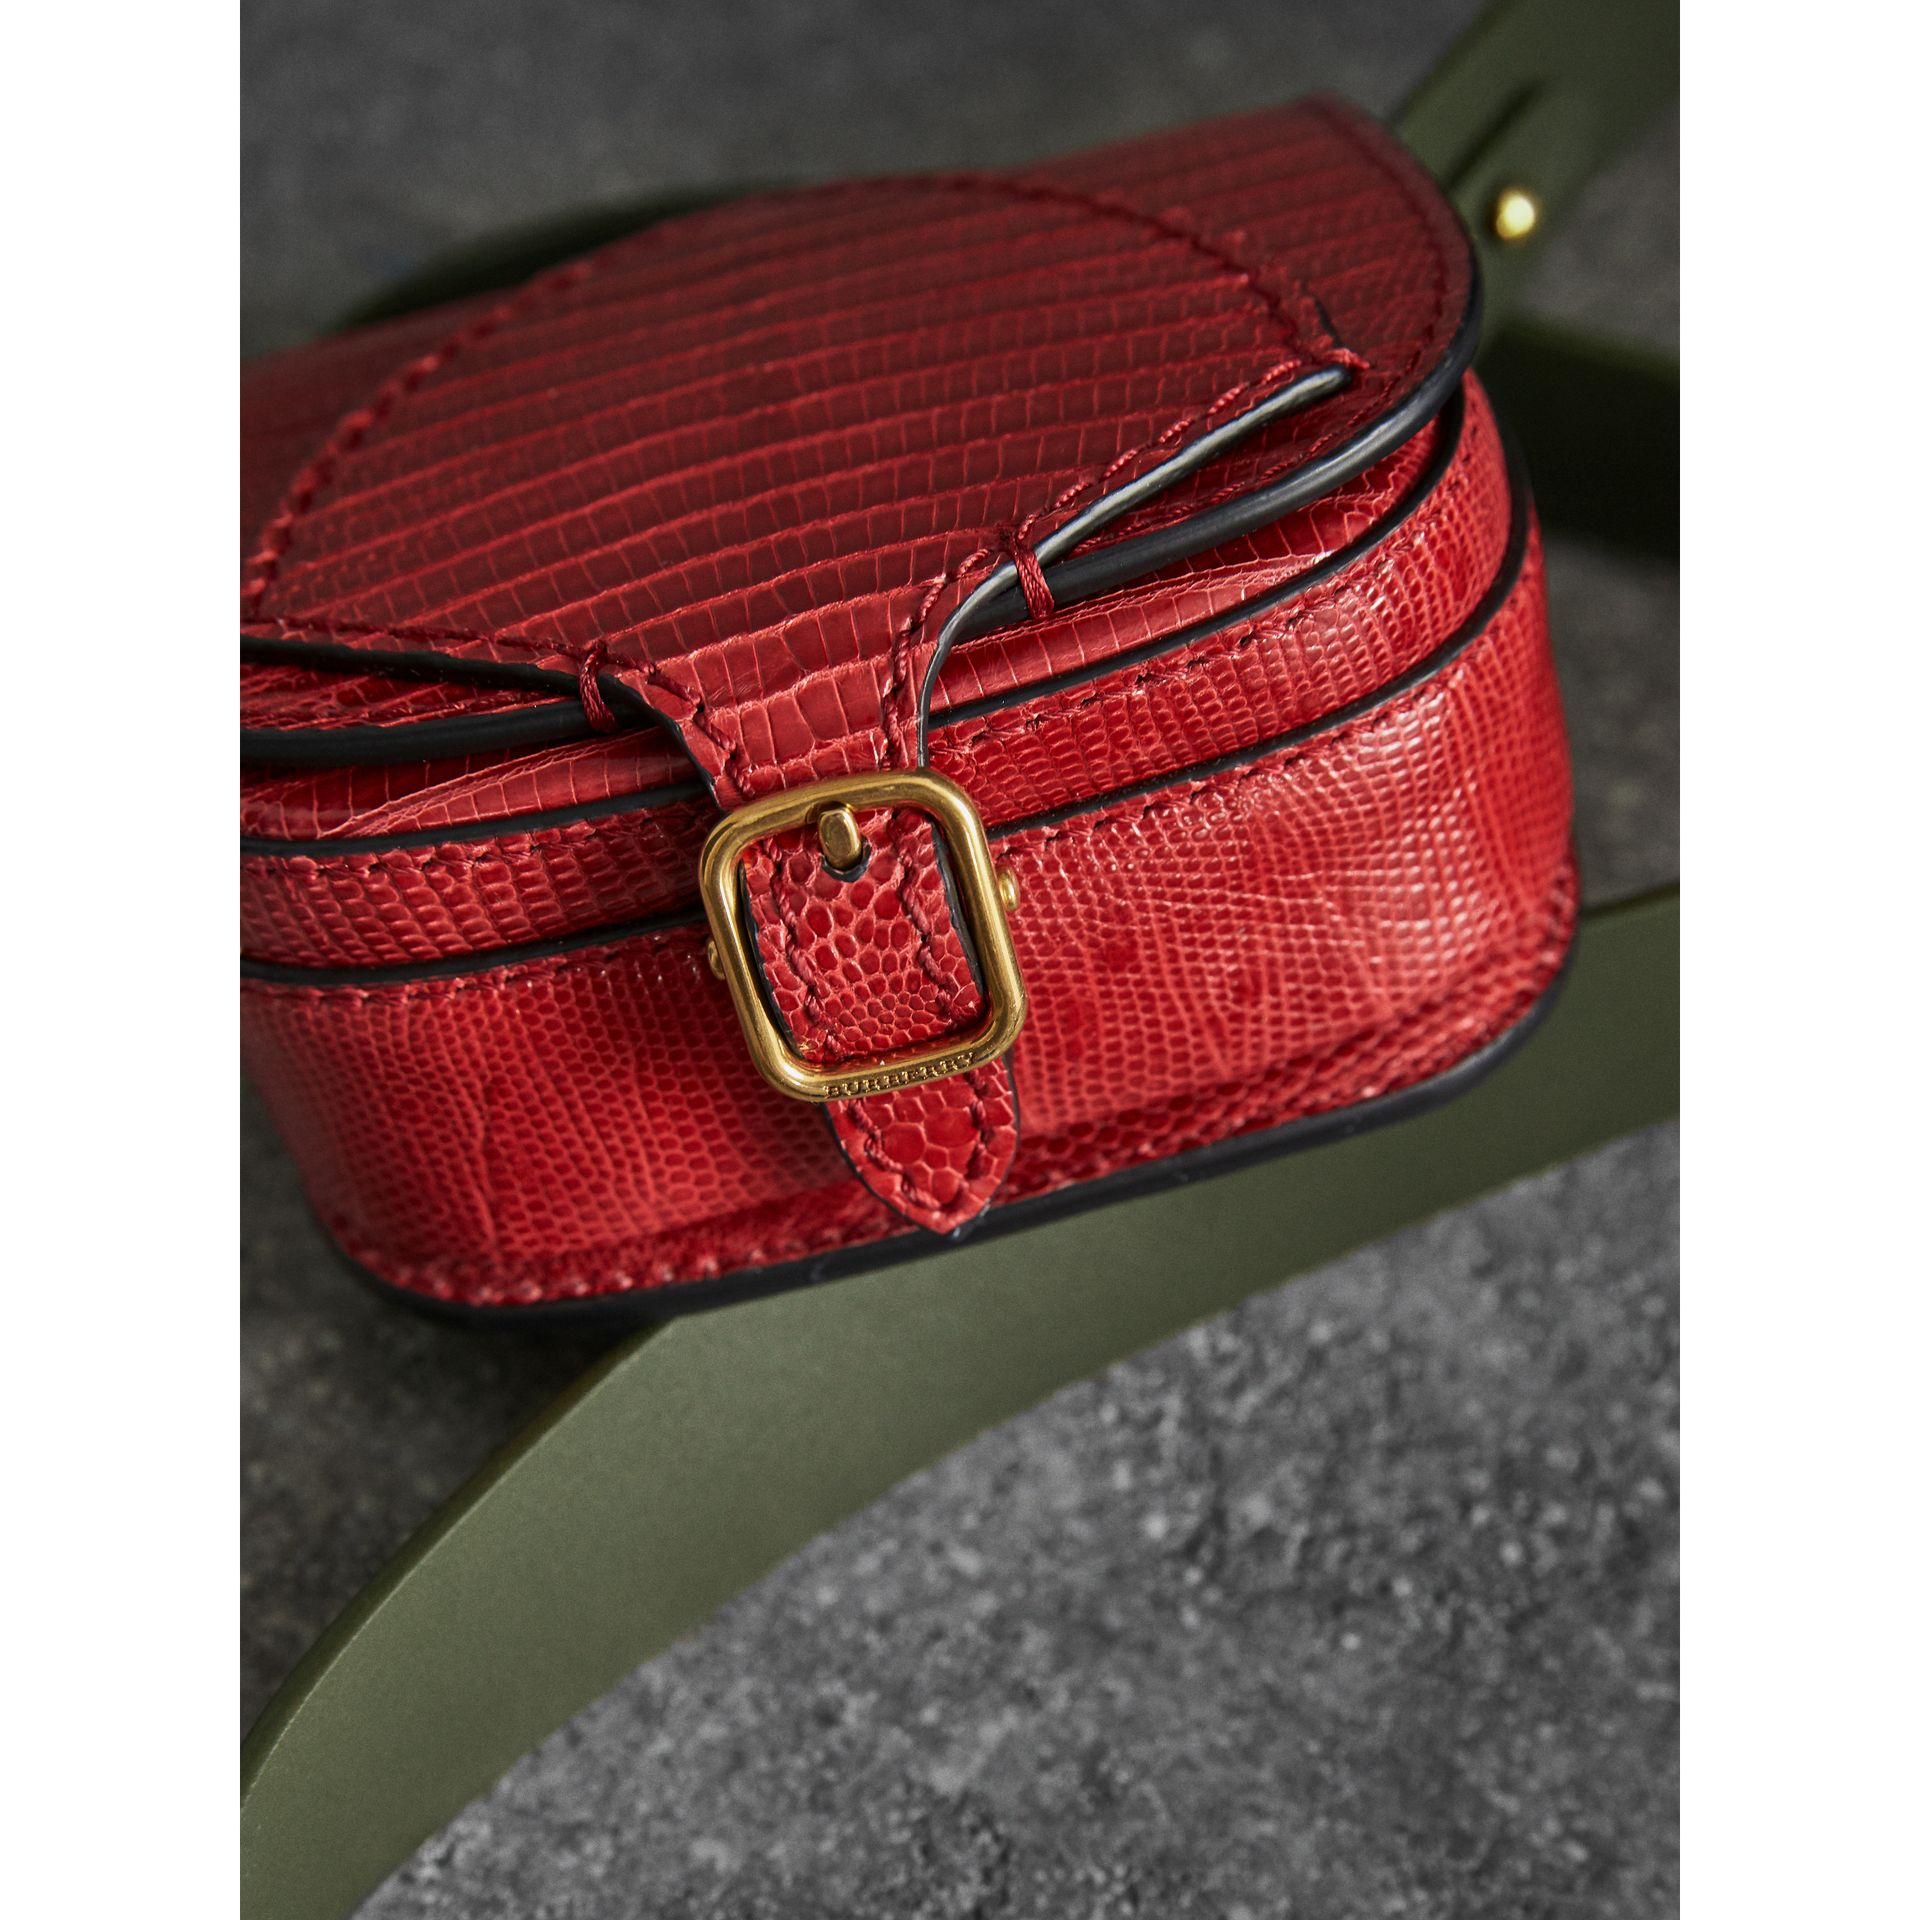 Mini sac The Satchel en lézard (Rouge Clou De Girofle) - Femme | Burberry - photo de la galerie 1